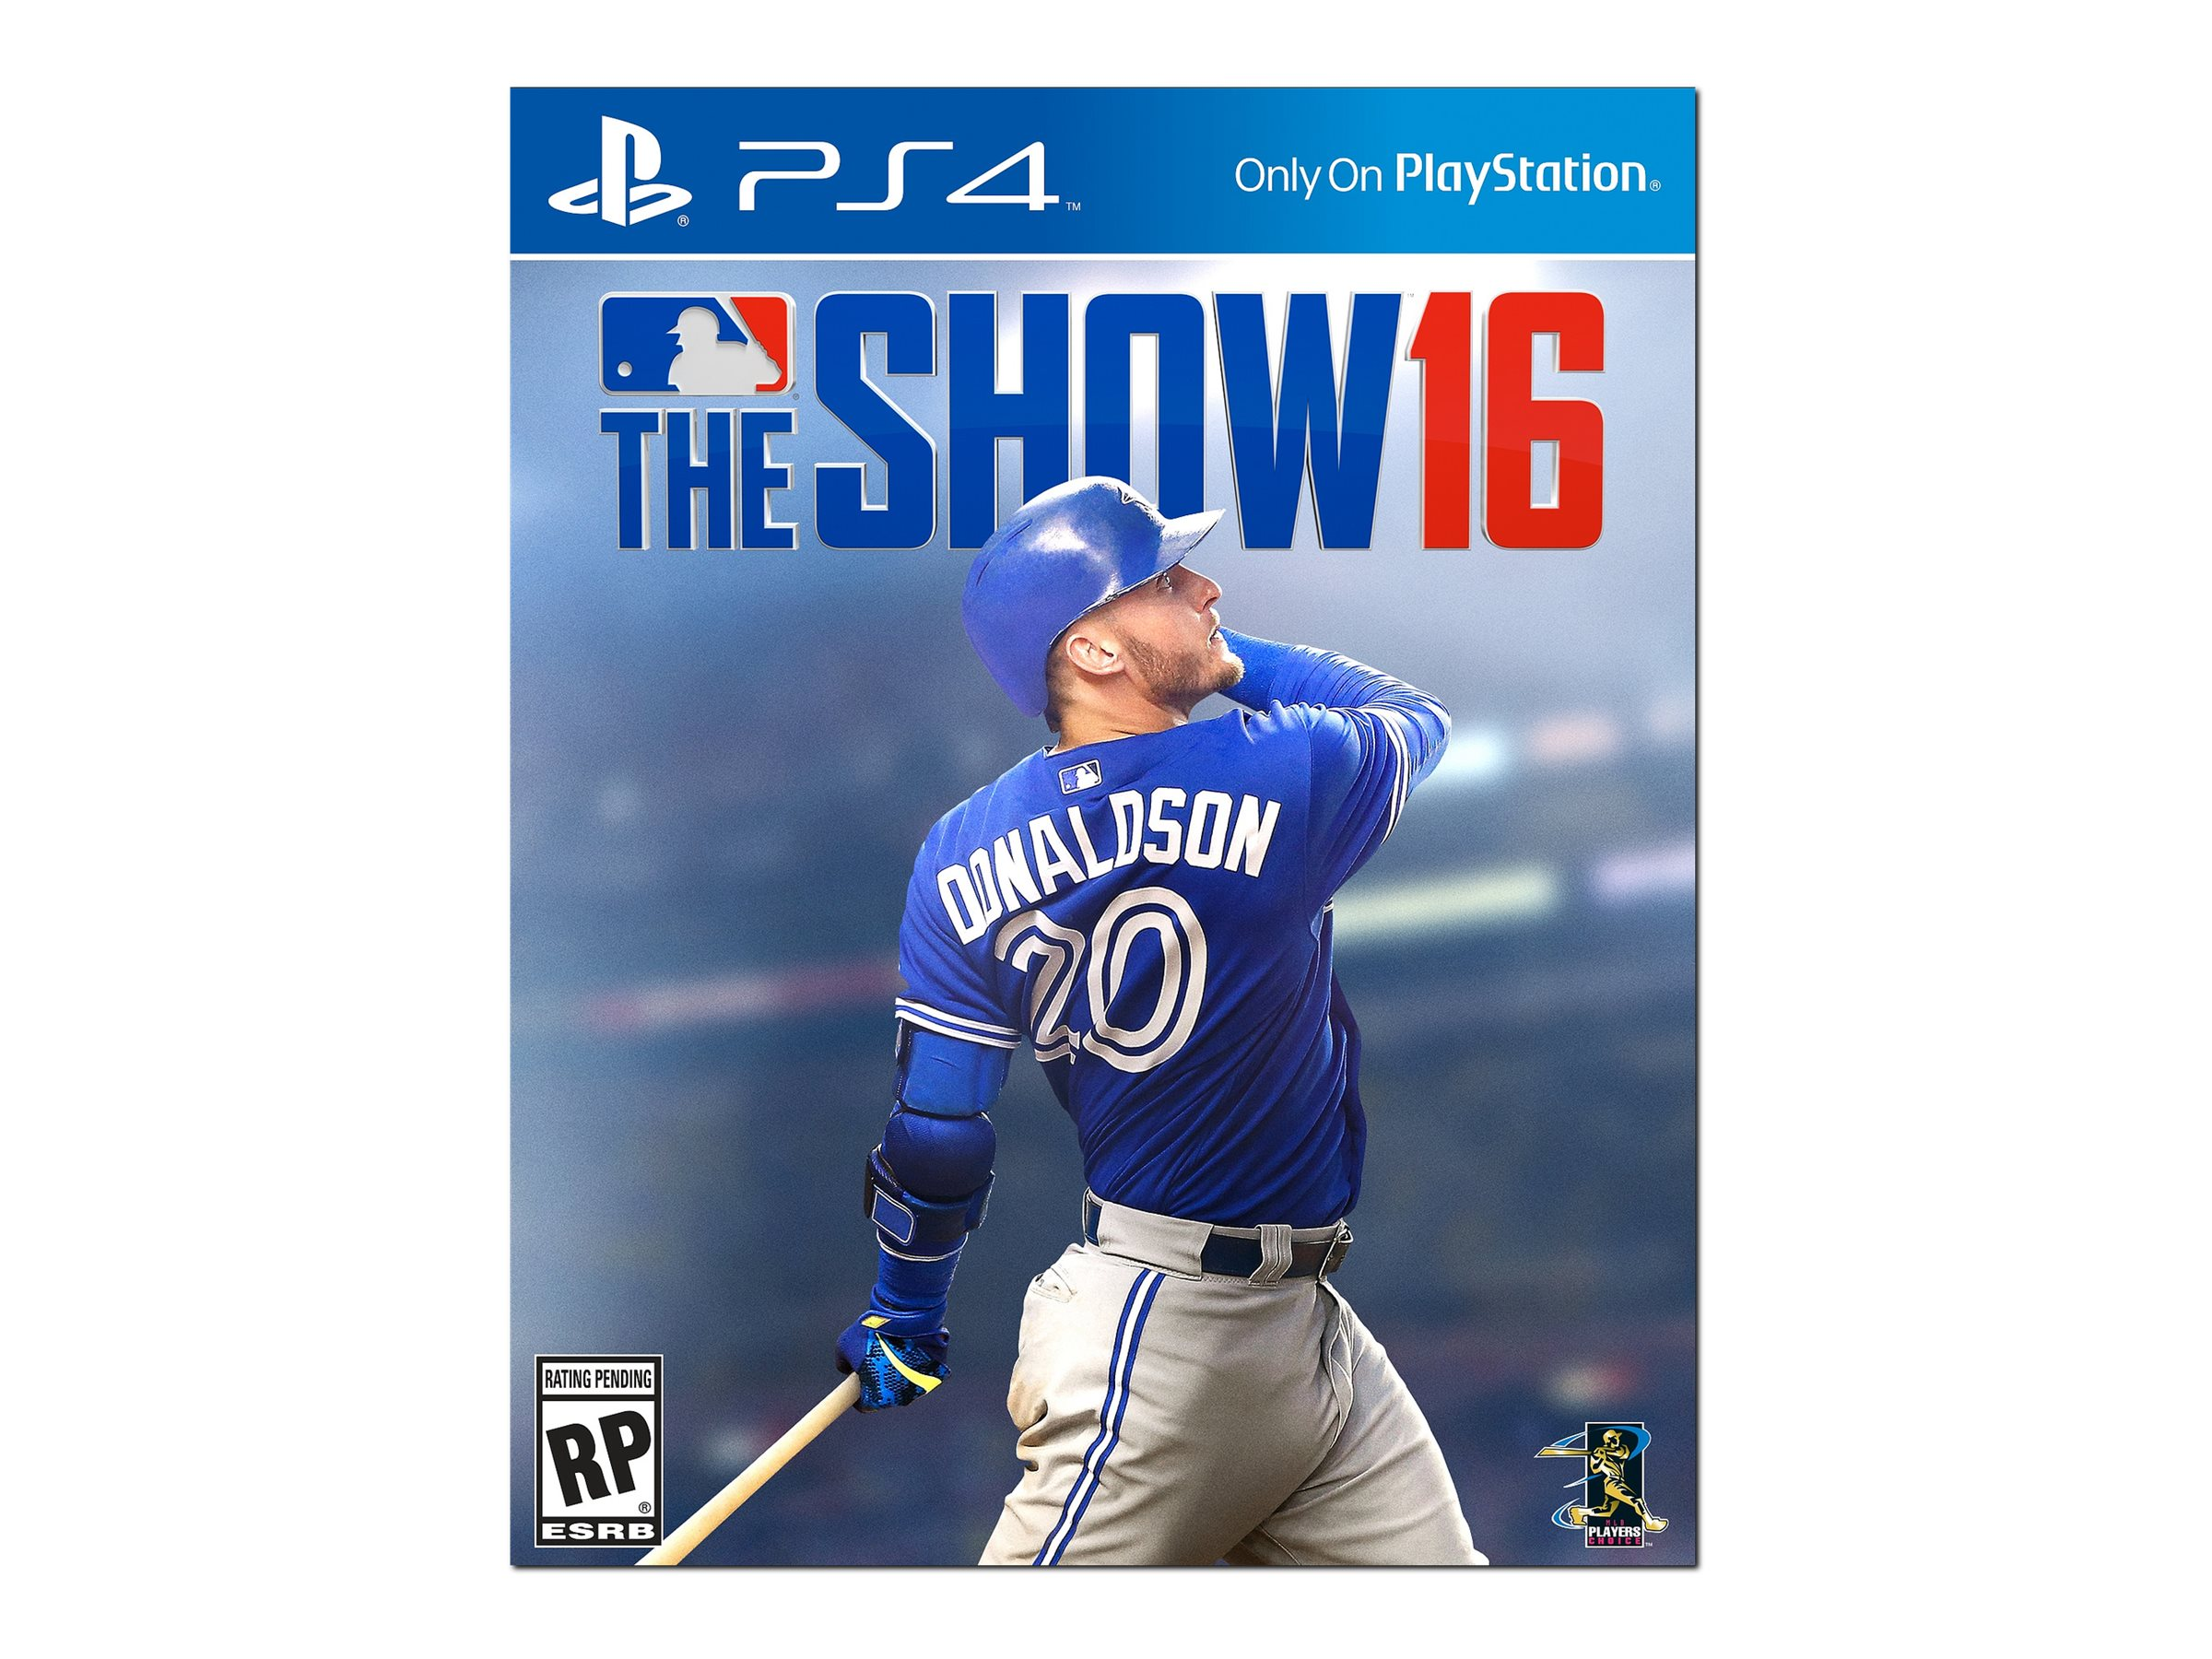 Sony MLB The Show 16, PS4, 3000929, 31474612, Video Games